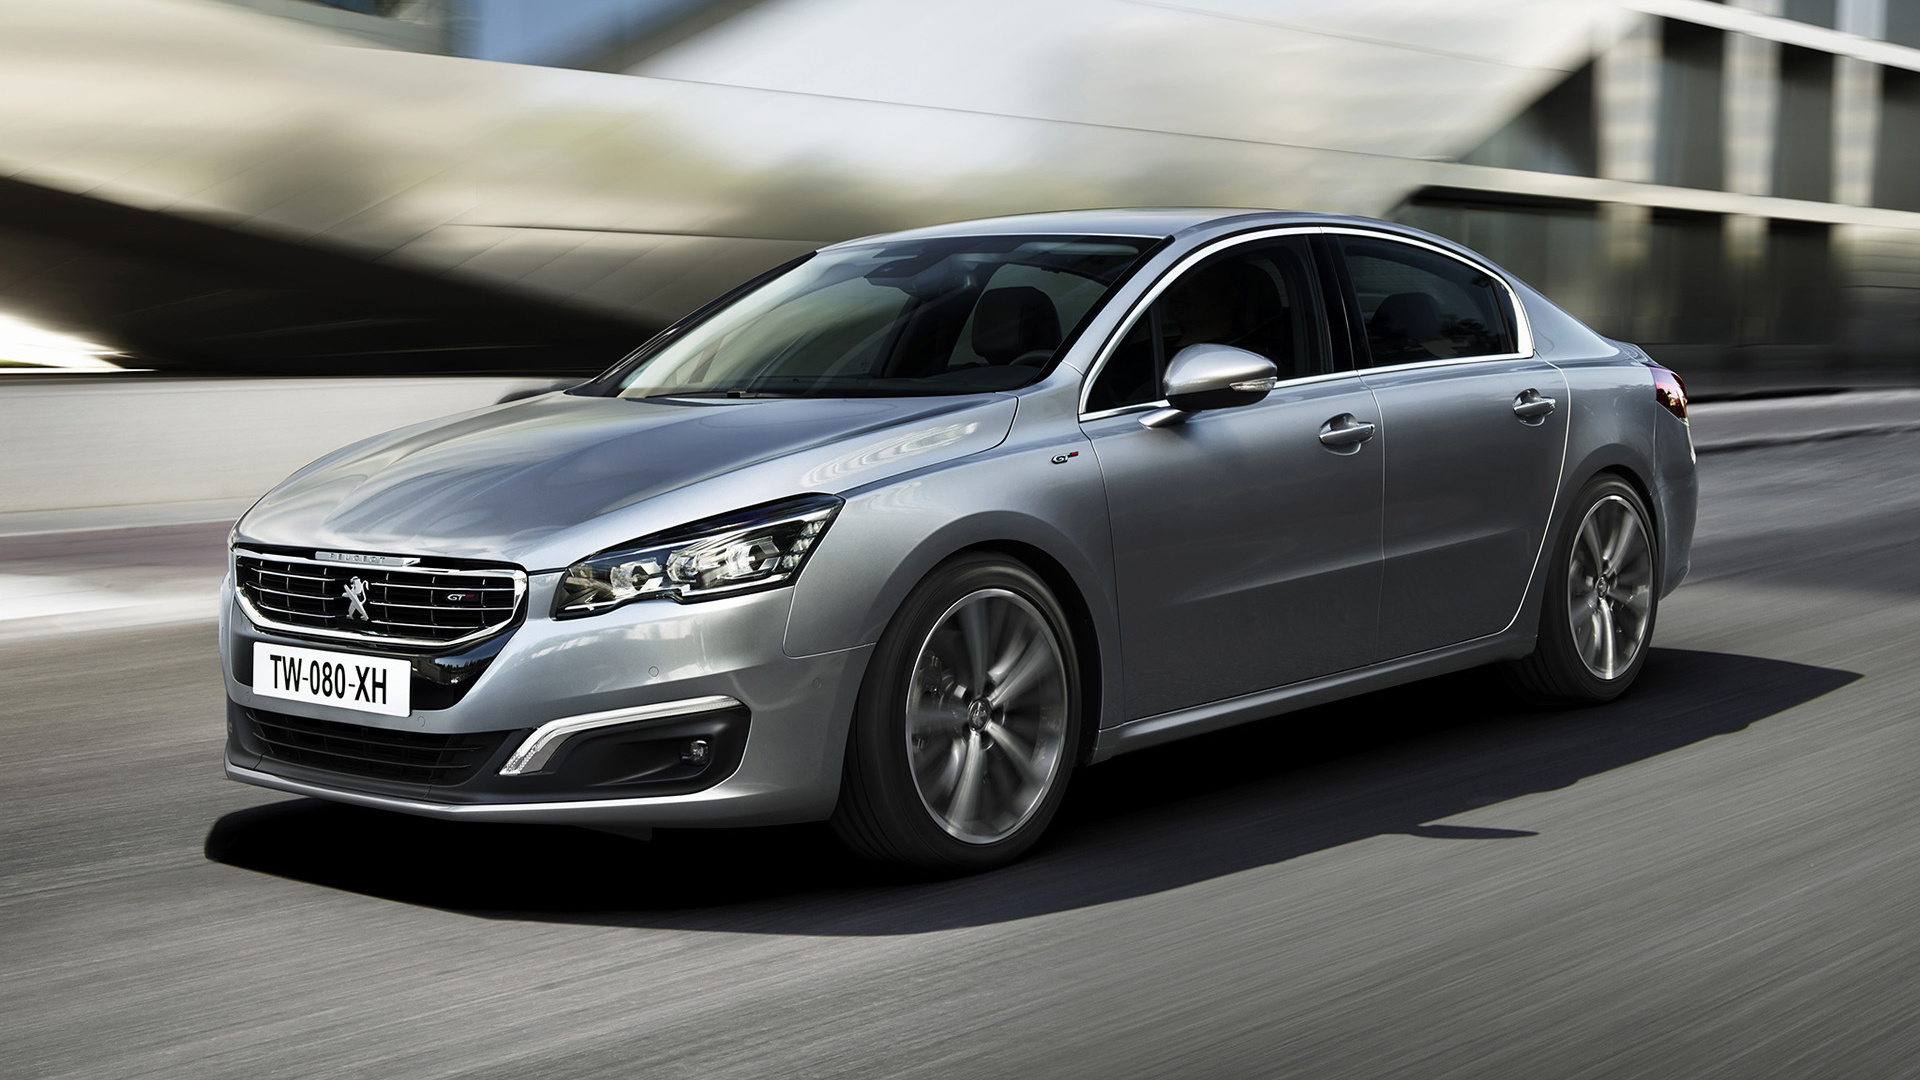 Who Makes Cadillac >> Peugeot 508 GT (2014) Wallpapers and HD Images - Car Pixel